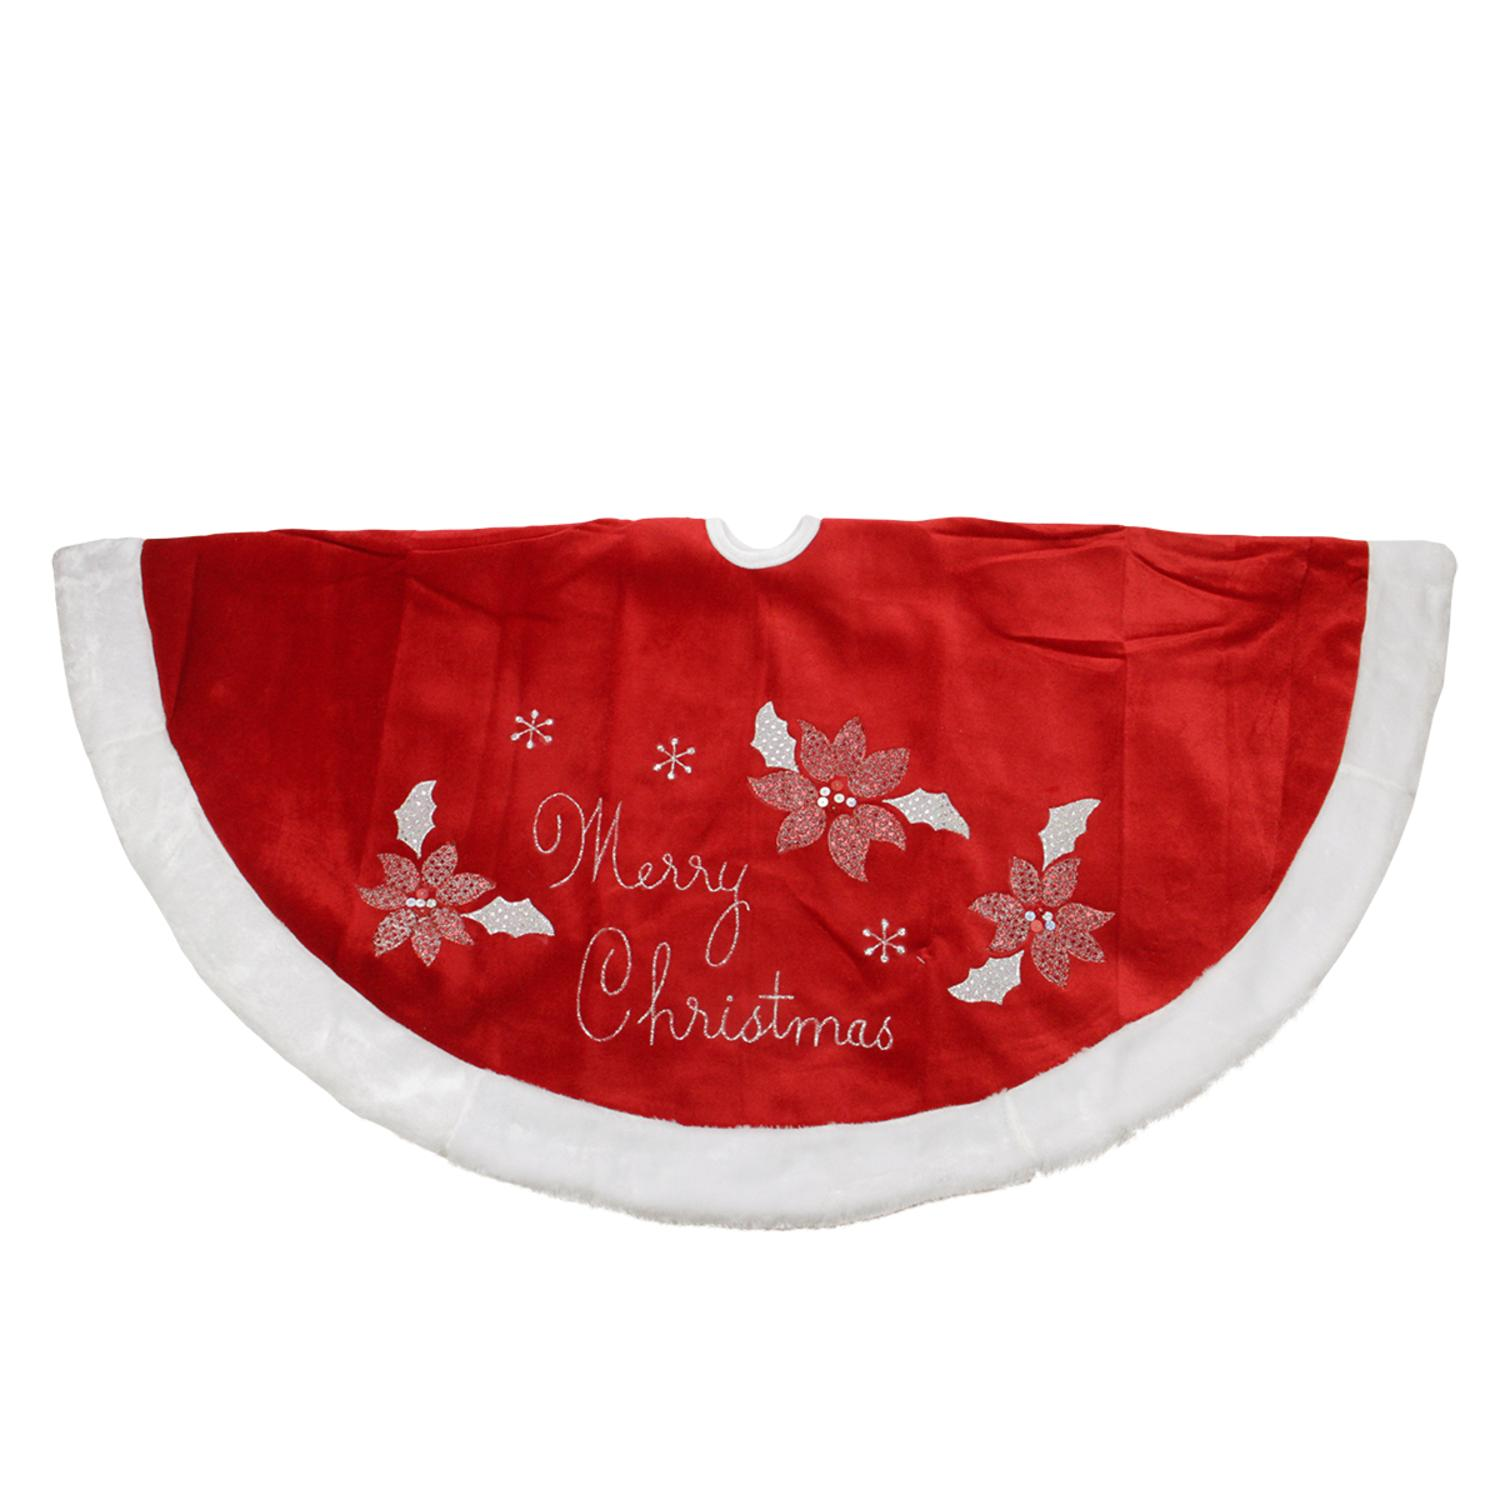 "48"" Embroidered Red Velveteen Poinsettia ""Merry Christmas"" Tree Skirt with White Faux Fur Trim"